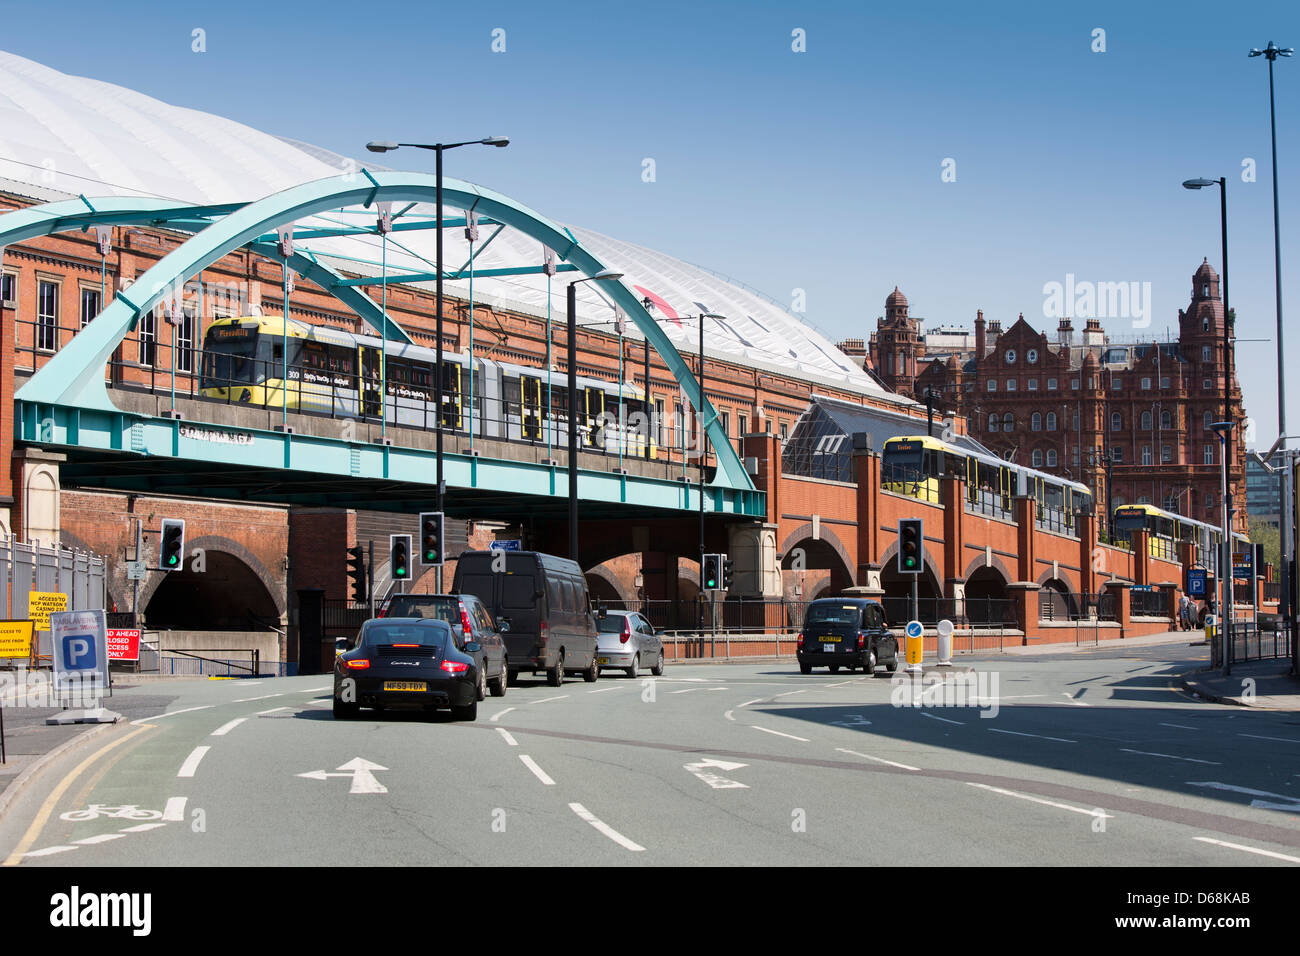 Manchester city centre, Manchester Central (G Mex Gmex G-mex) exhibition centre and converted railway station Stock Photo